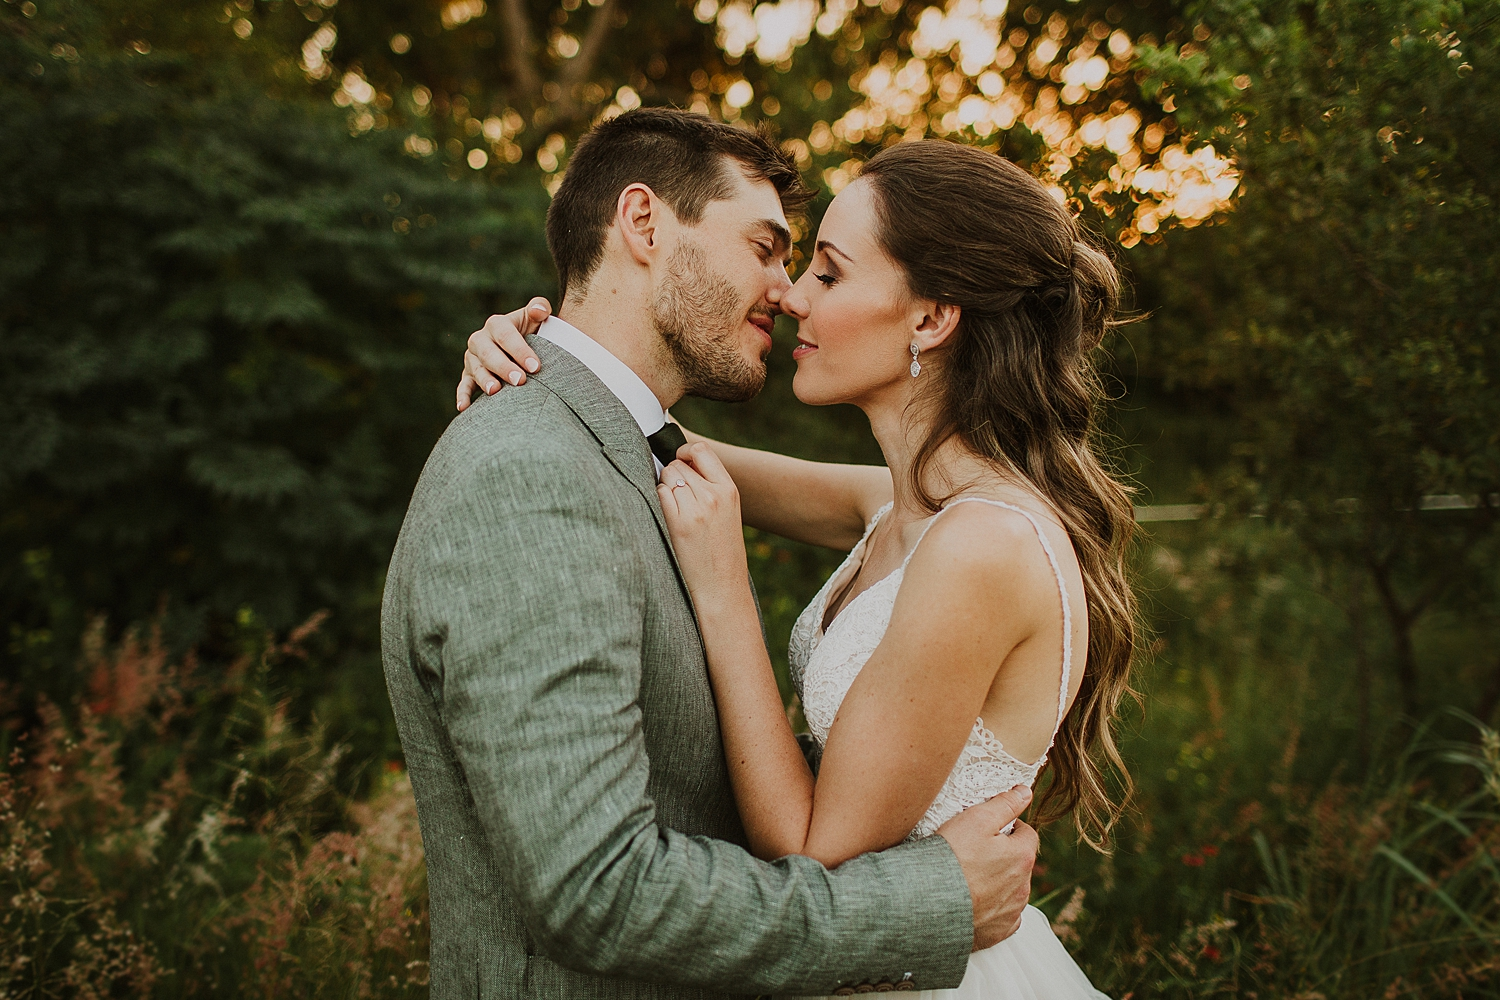 Leon & Melani - Pretoria, South Africa